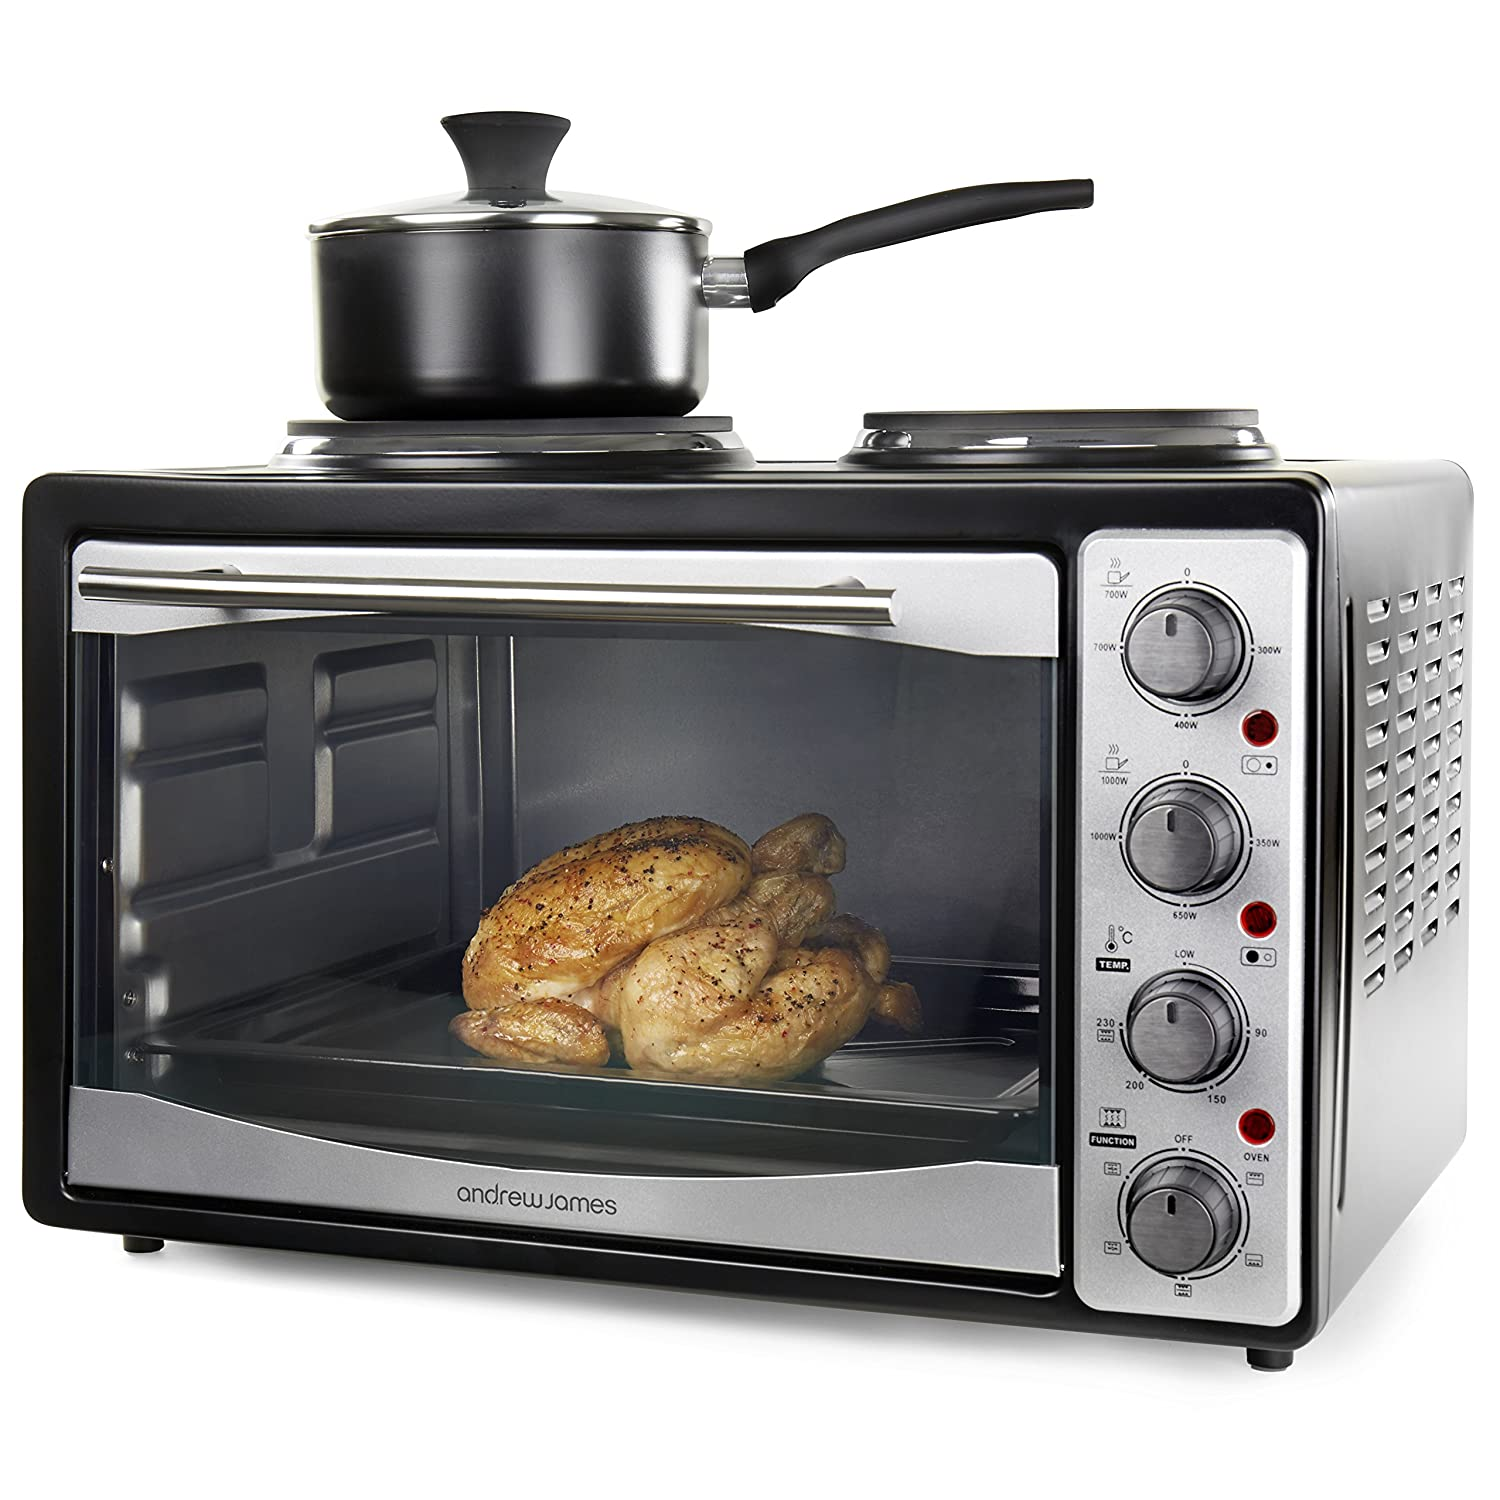 Andrew james 33l black mini oven with electric grill and double andrew james 33l black mini oven with electric grill and double hotplate fast heating 5 cooking functions toaster ovens roasting baking grilling publicscrutiny Images